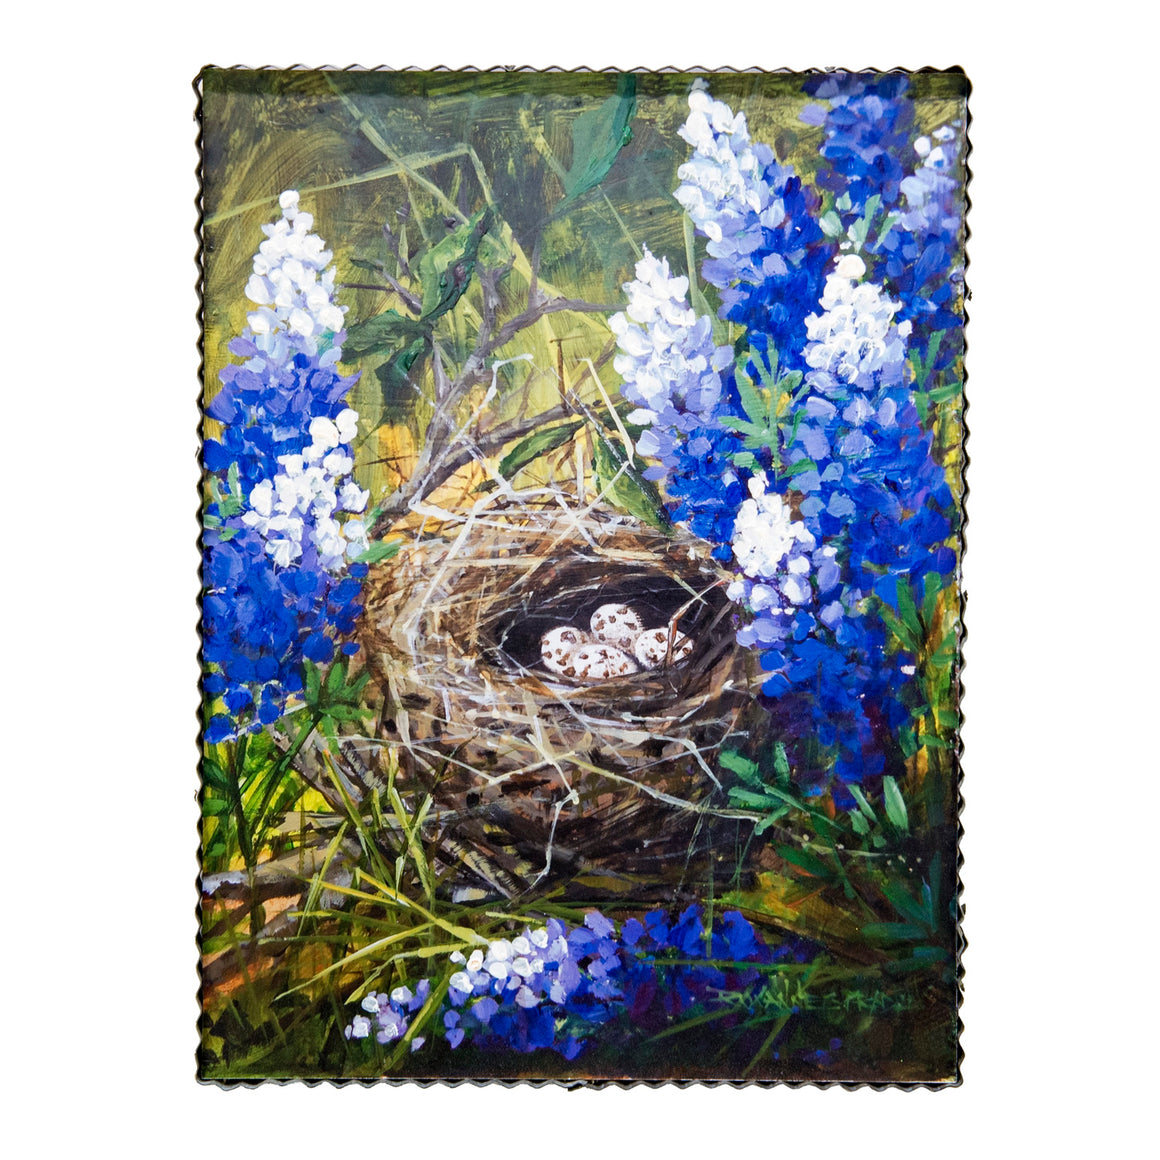 GALLERY BLUEBONNET QUAIL TIME